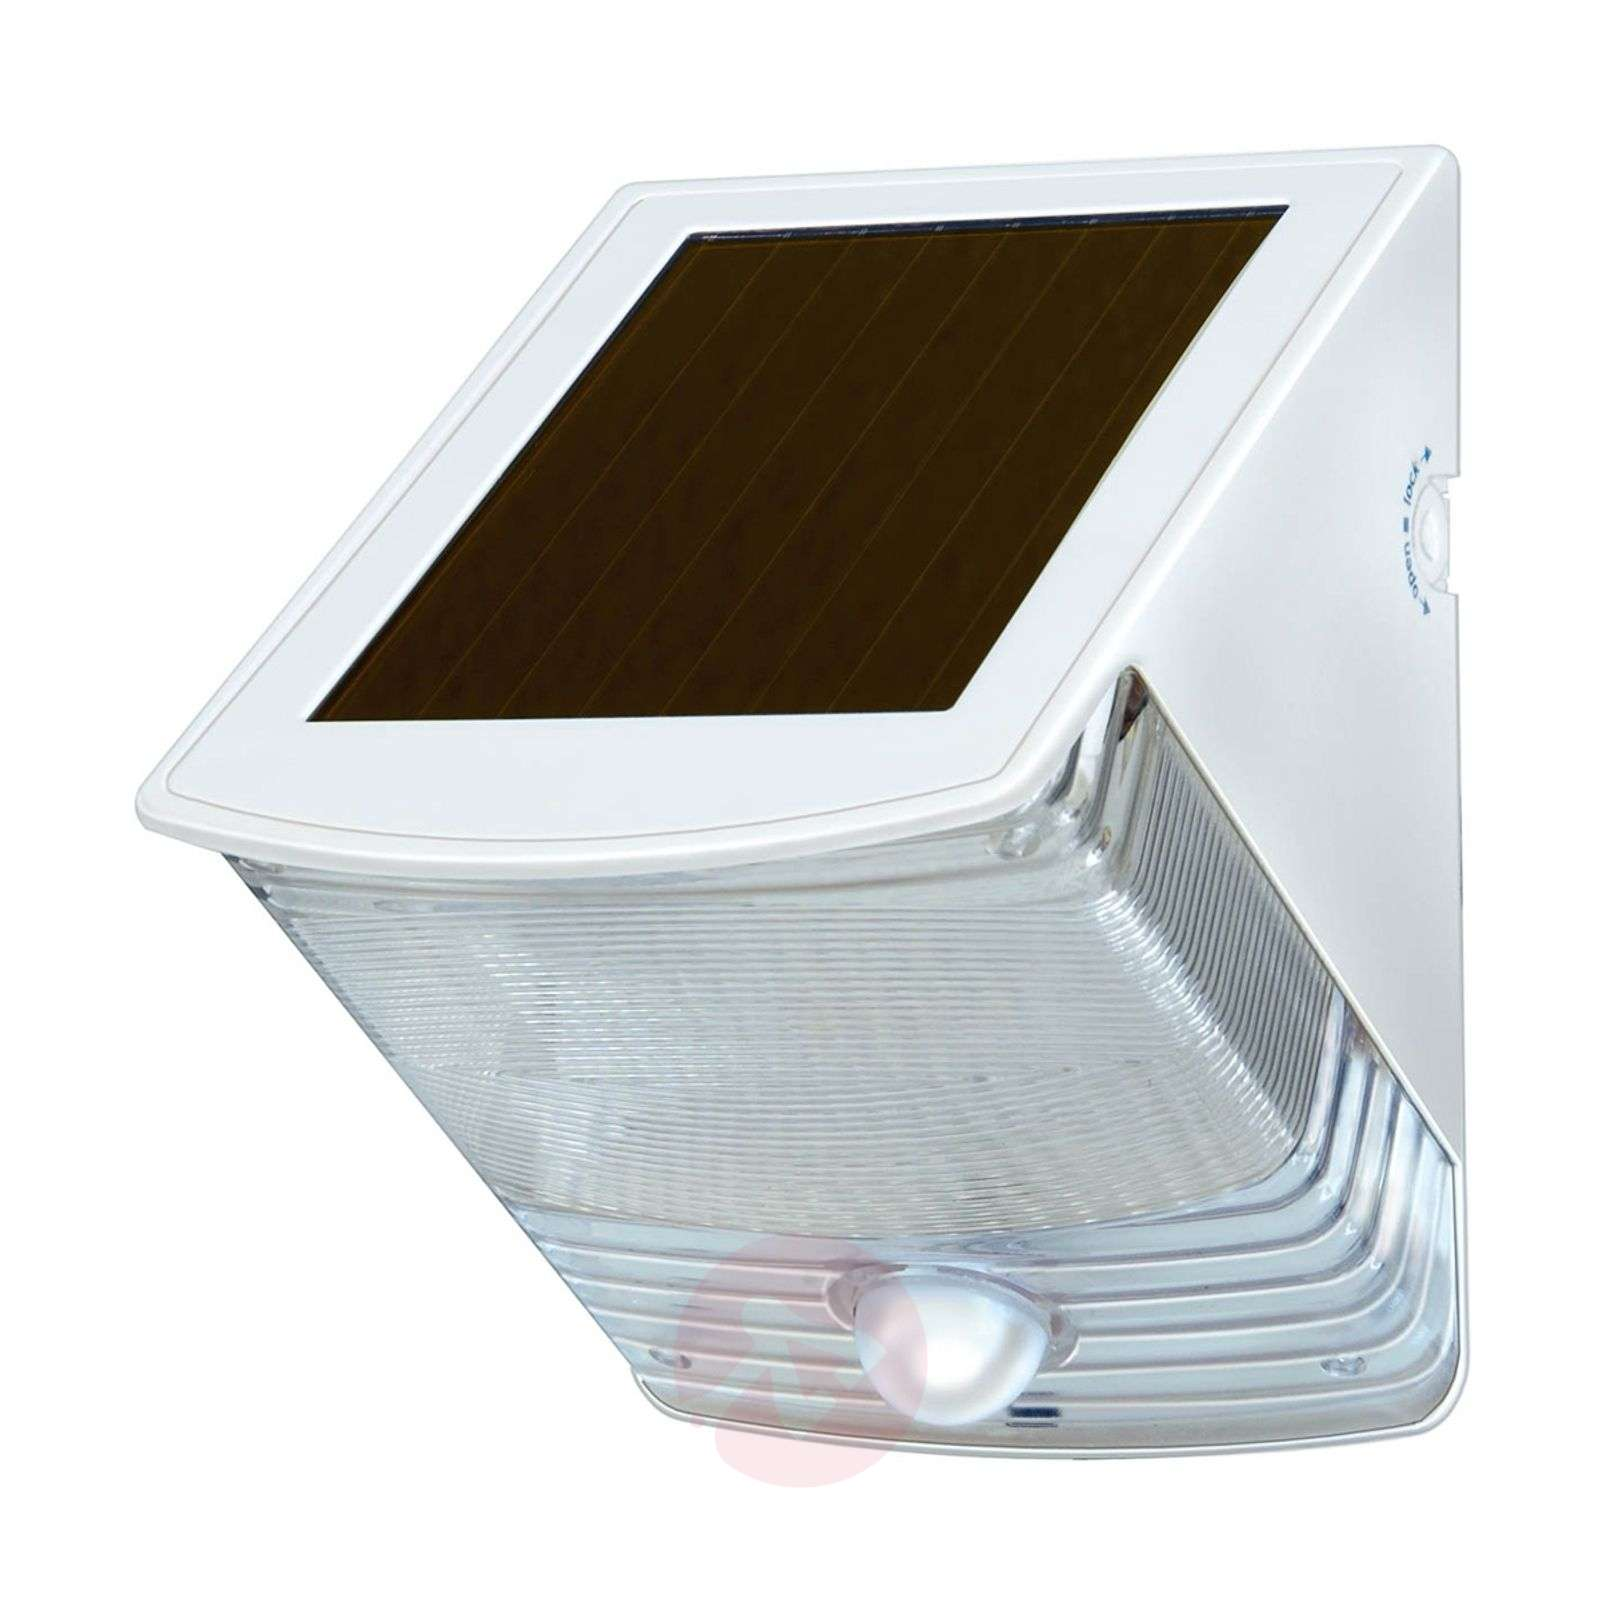 Aplique de pared LED solar SOL 04 IP44 blanco-1540164-02